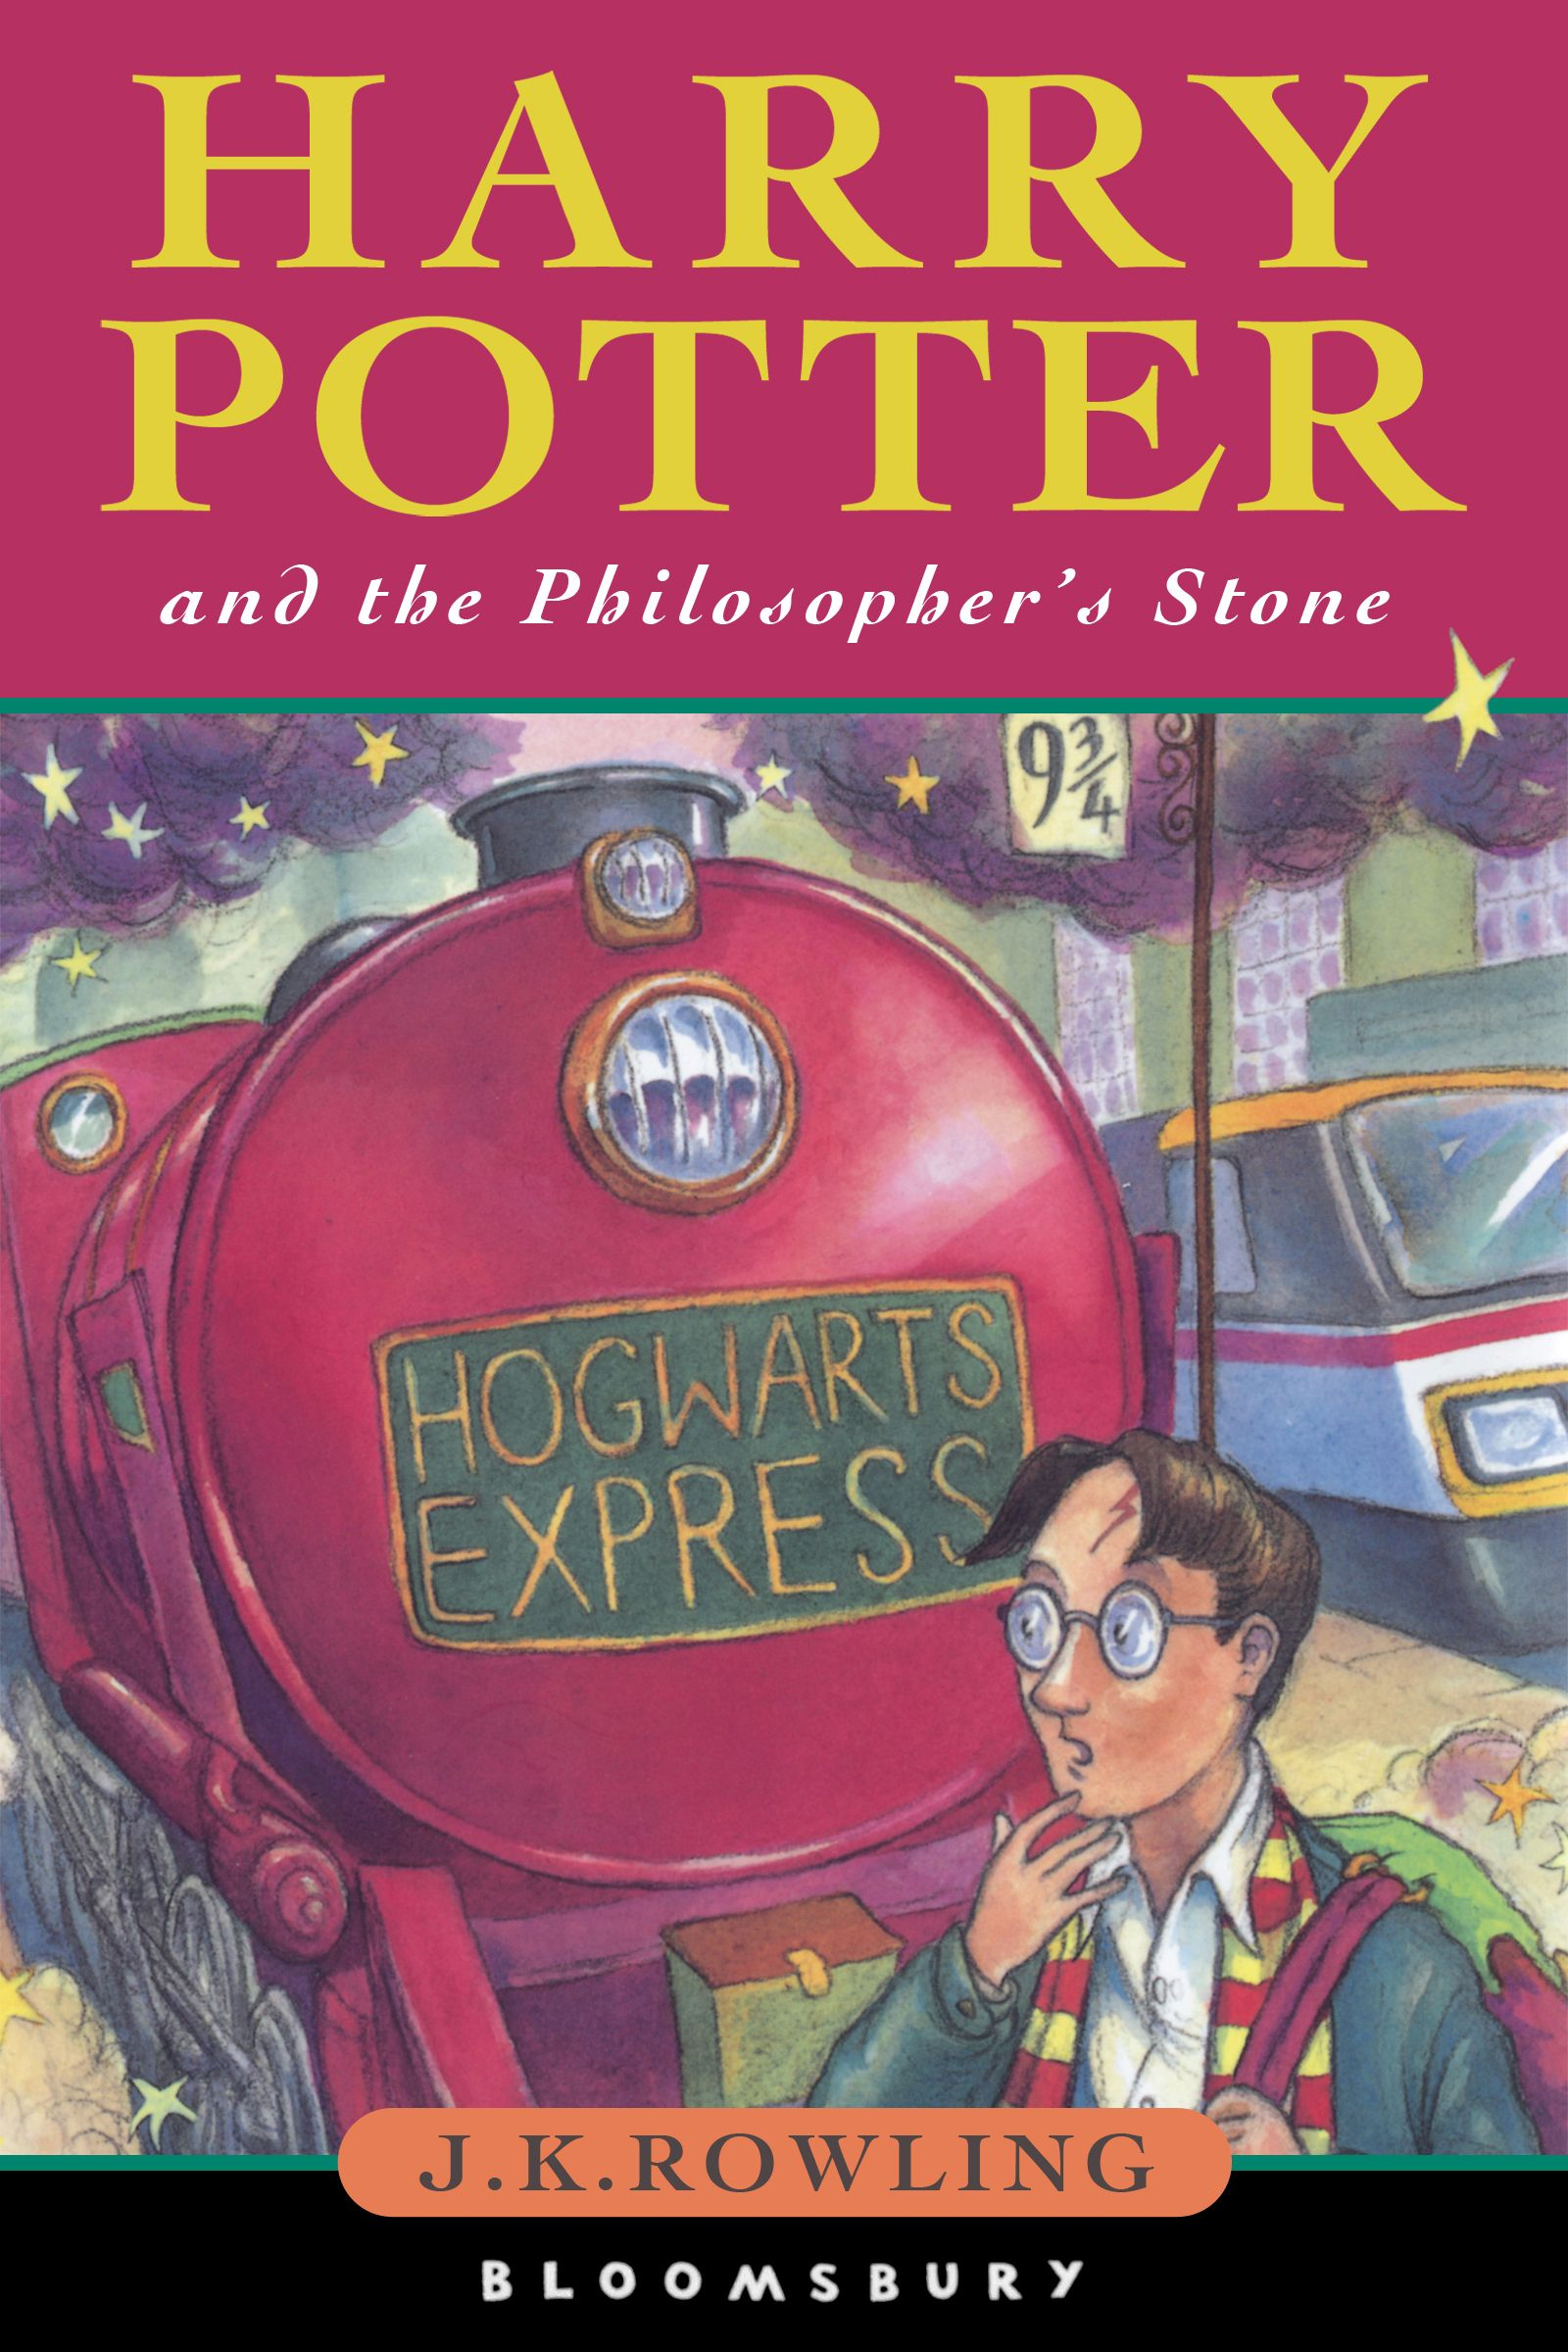 Harry Potter Old Book Covers ~ Cover art harry potter books and